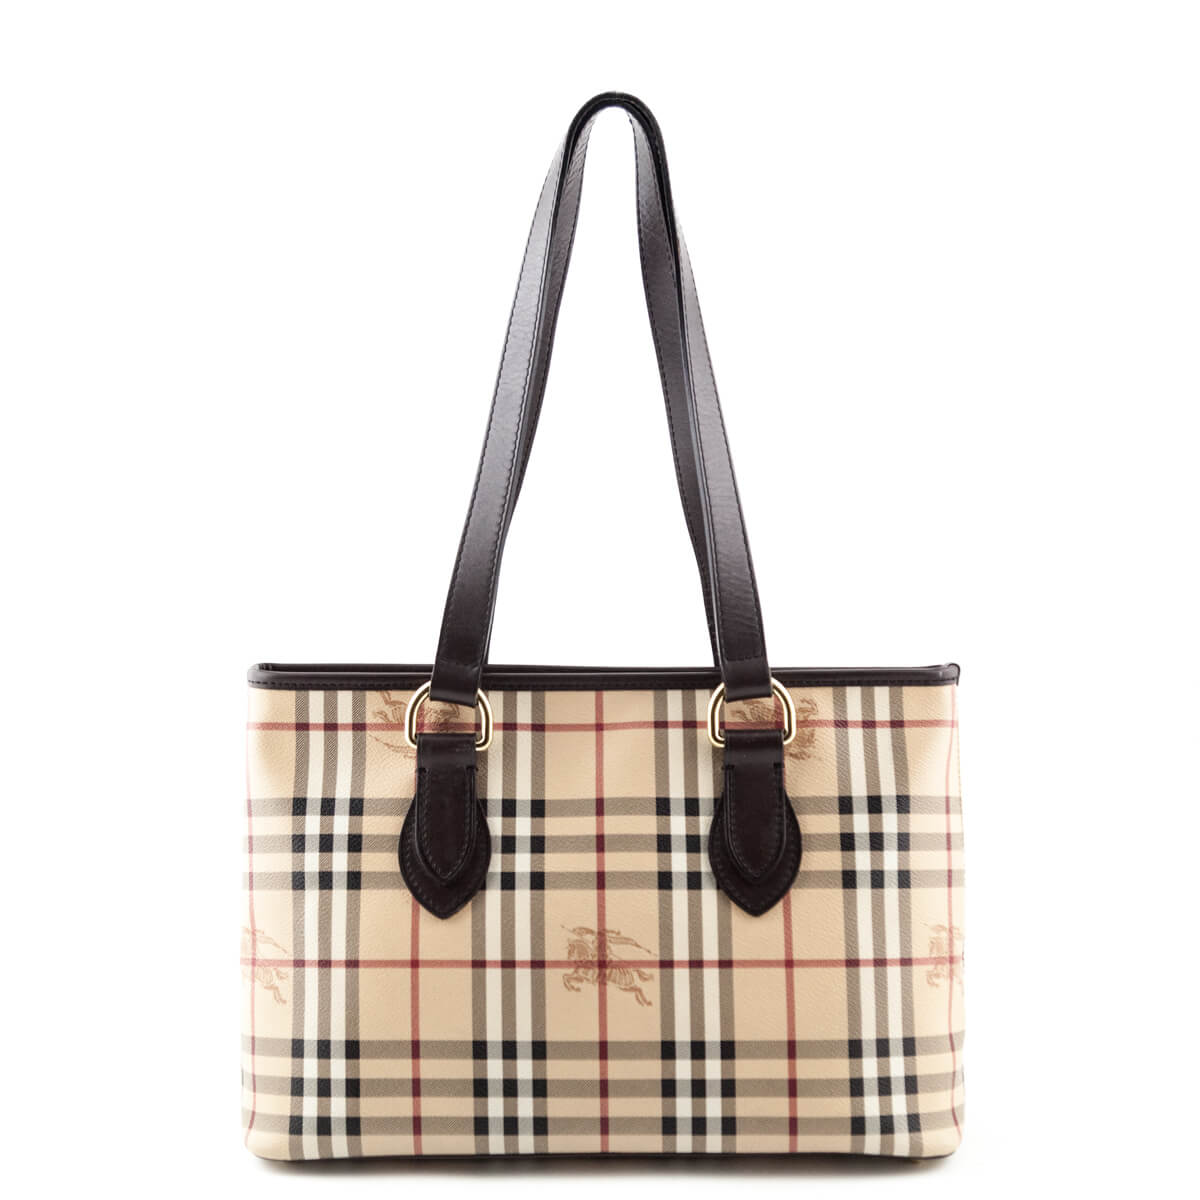 Burberry Haymarket Check Regent Tote - LOVE that BAG - Preowned Authentic  Designer Handbags ... 7ad61ae0197ee